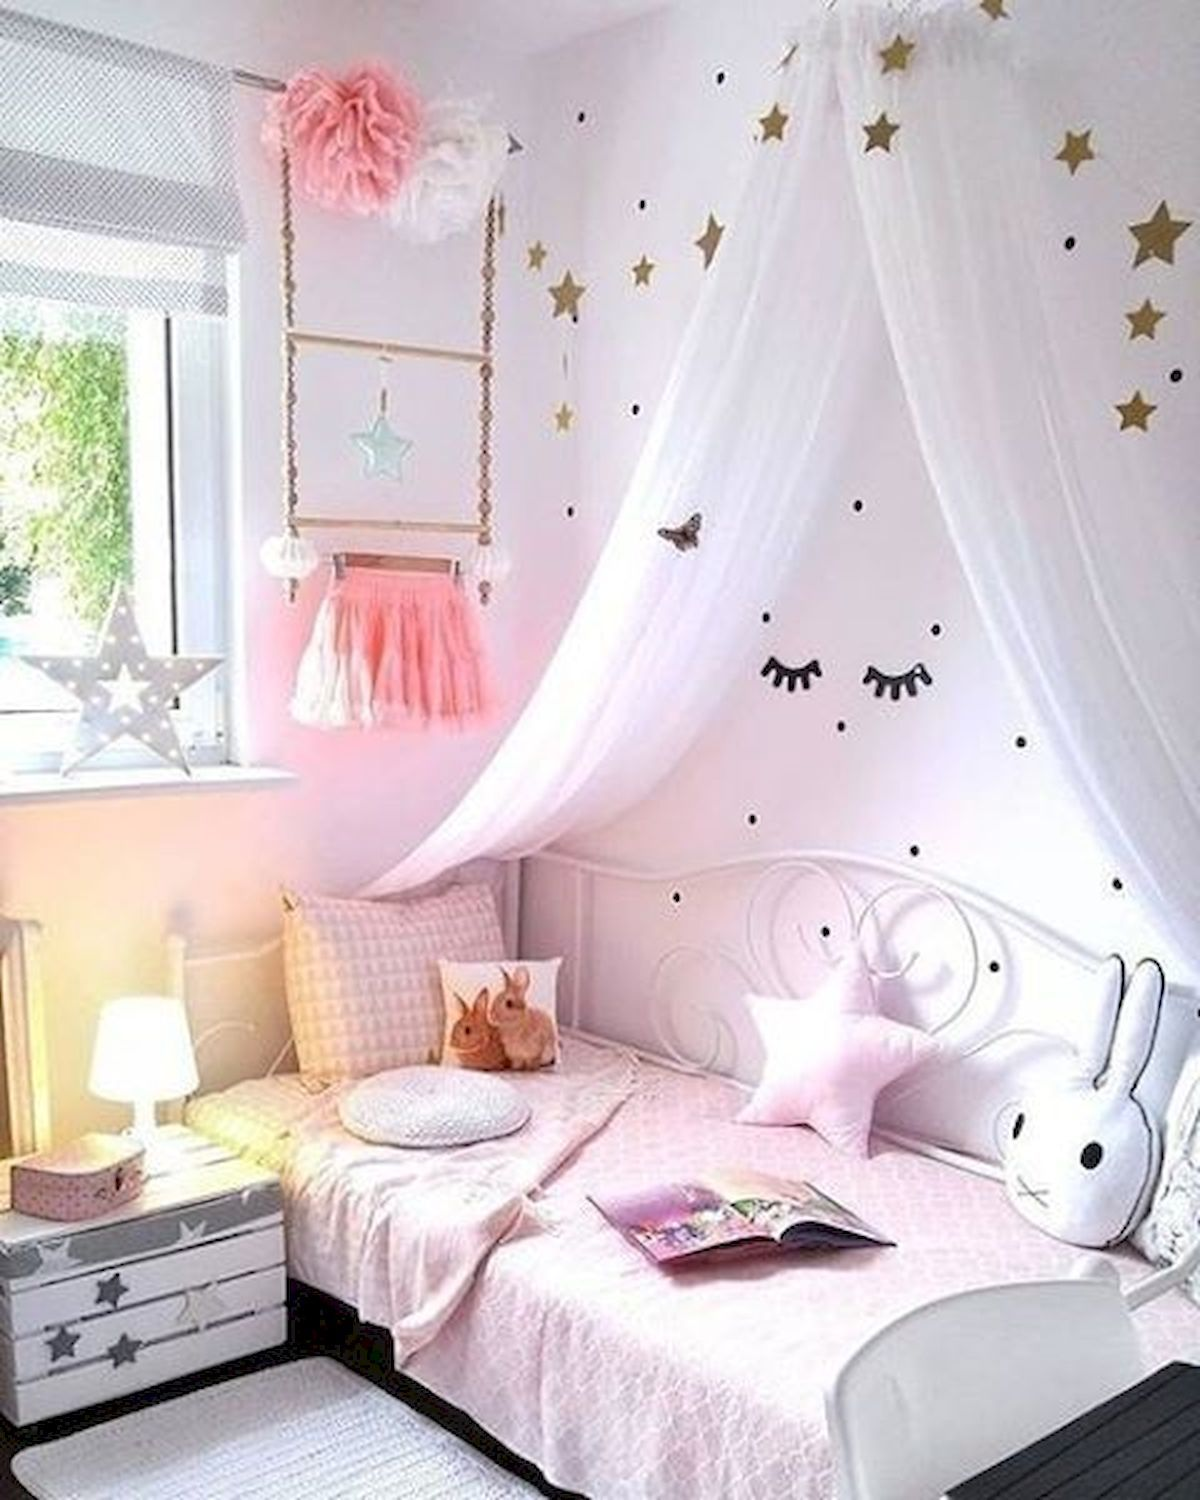 33 Adorable Nursery Room Ideas For Baby Girl images